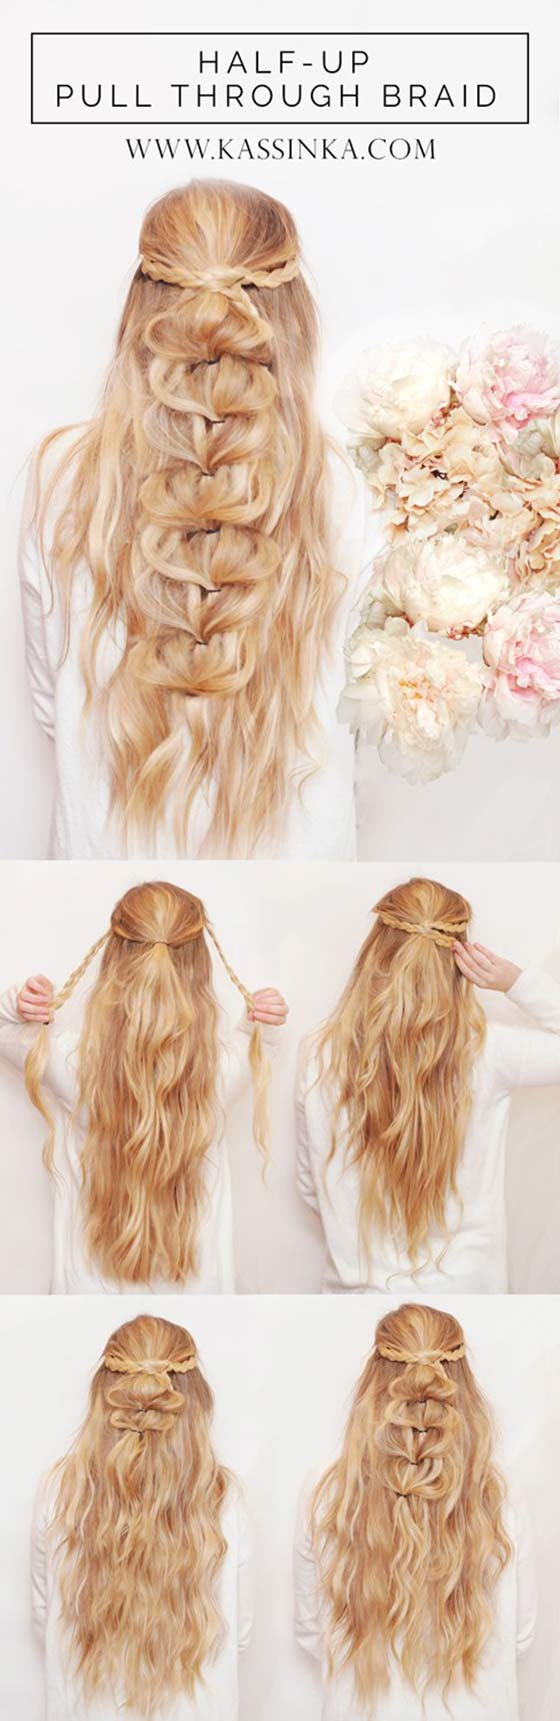 Half-Up-Pull-Through-Braid